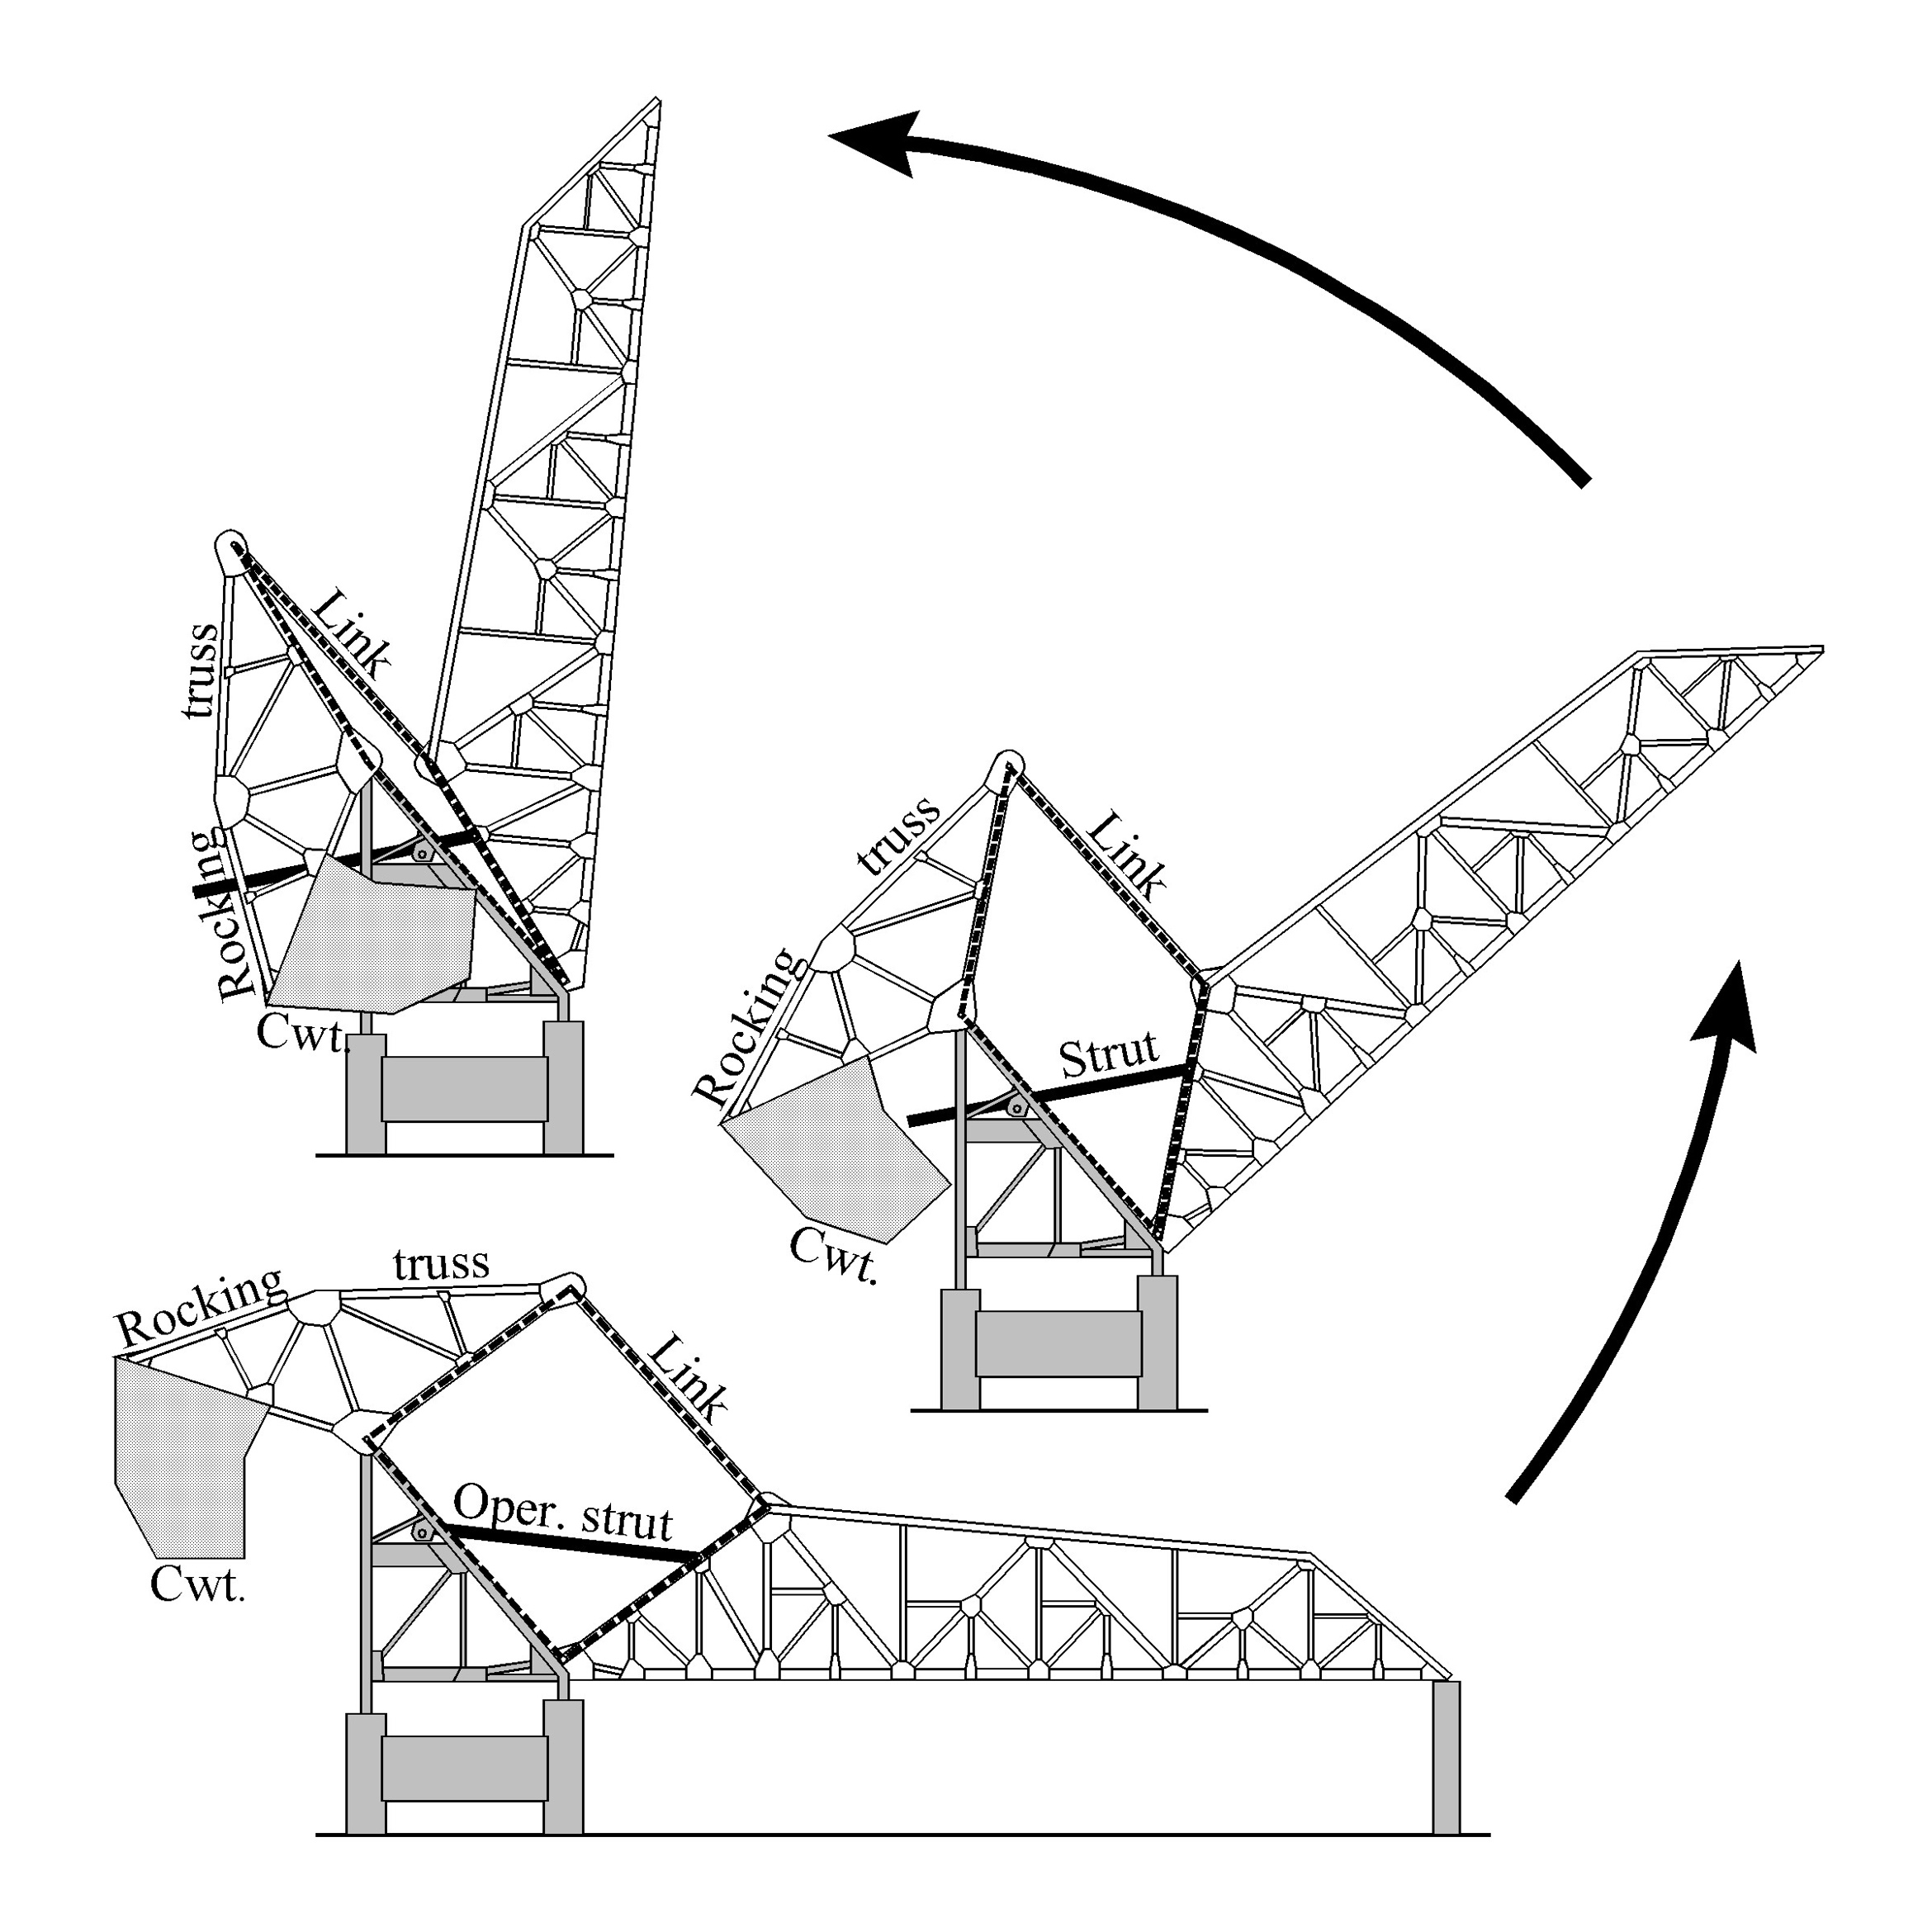 43 Warren Truss Bridge Diagram The First Was Probably A Schematic Of Scal In 1919 Not To Scale With Stationary Parts Grey Tone Sketch By Author